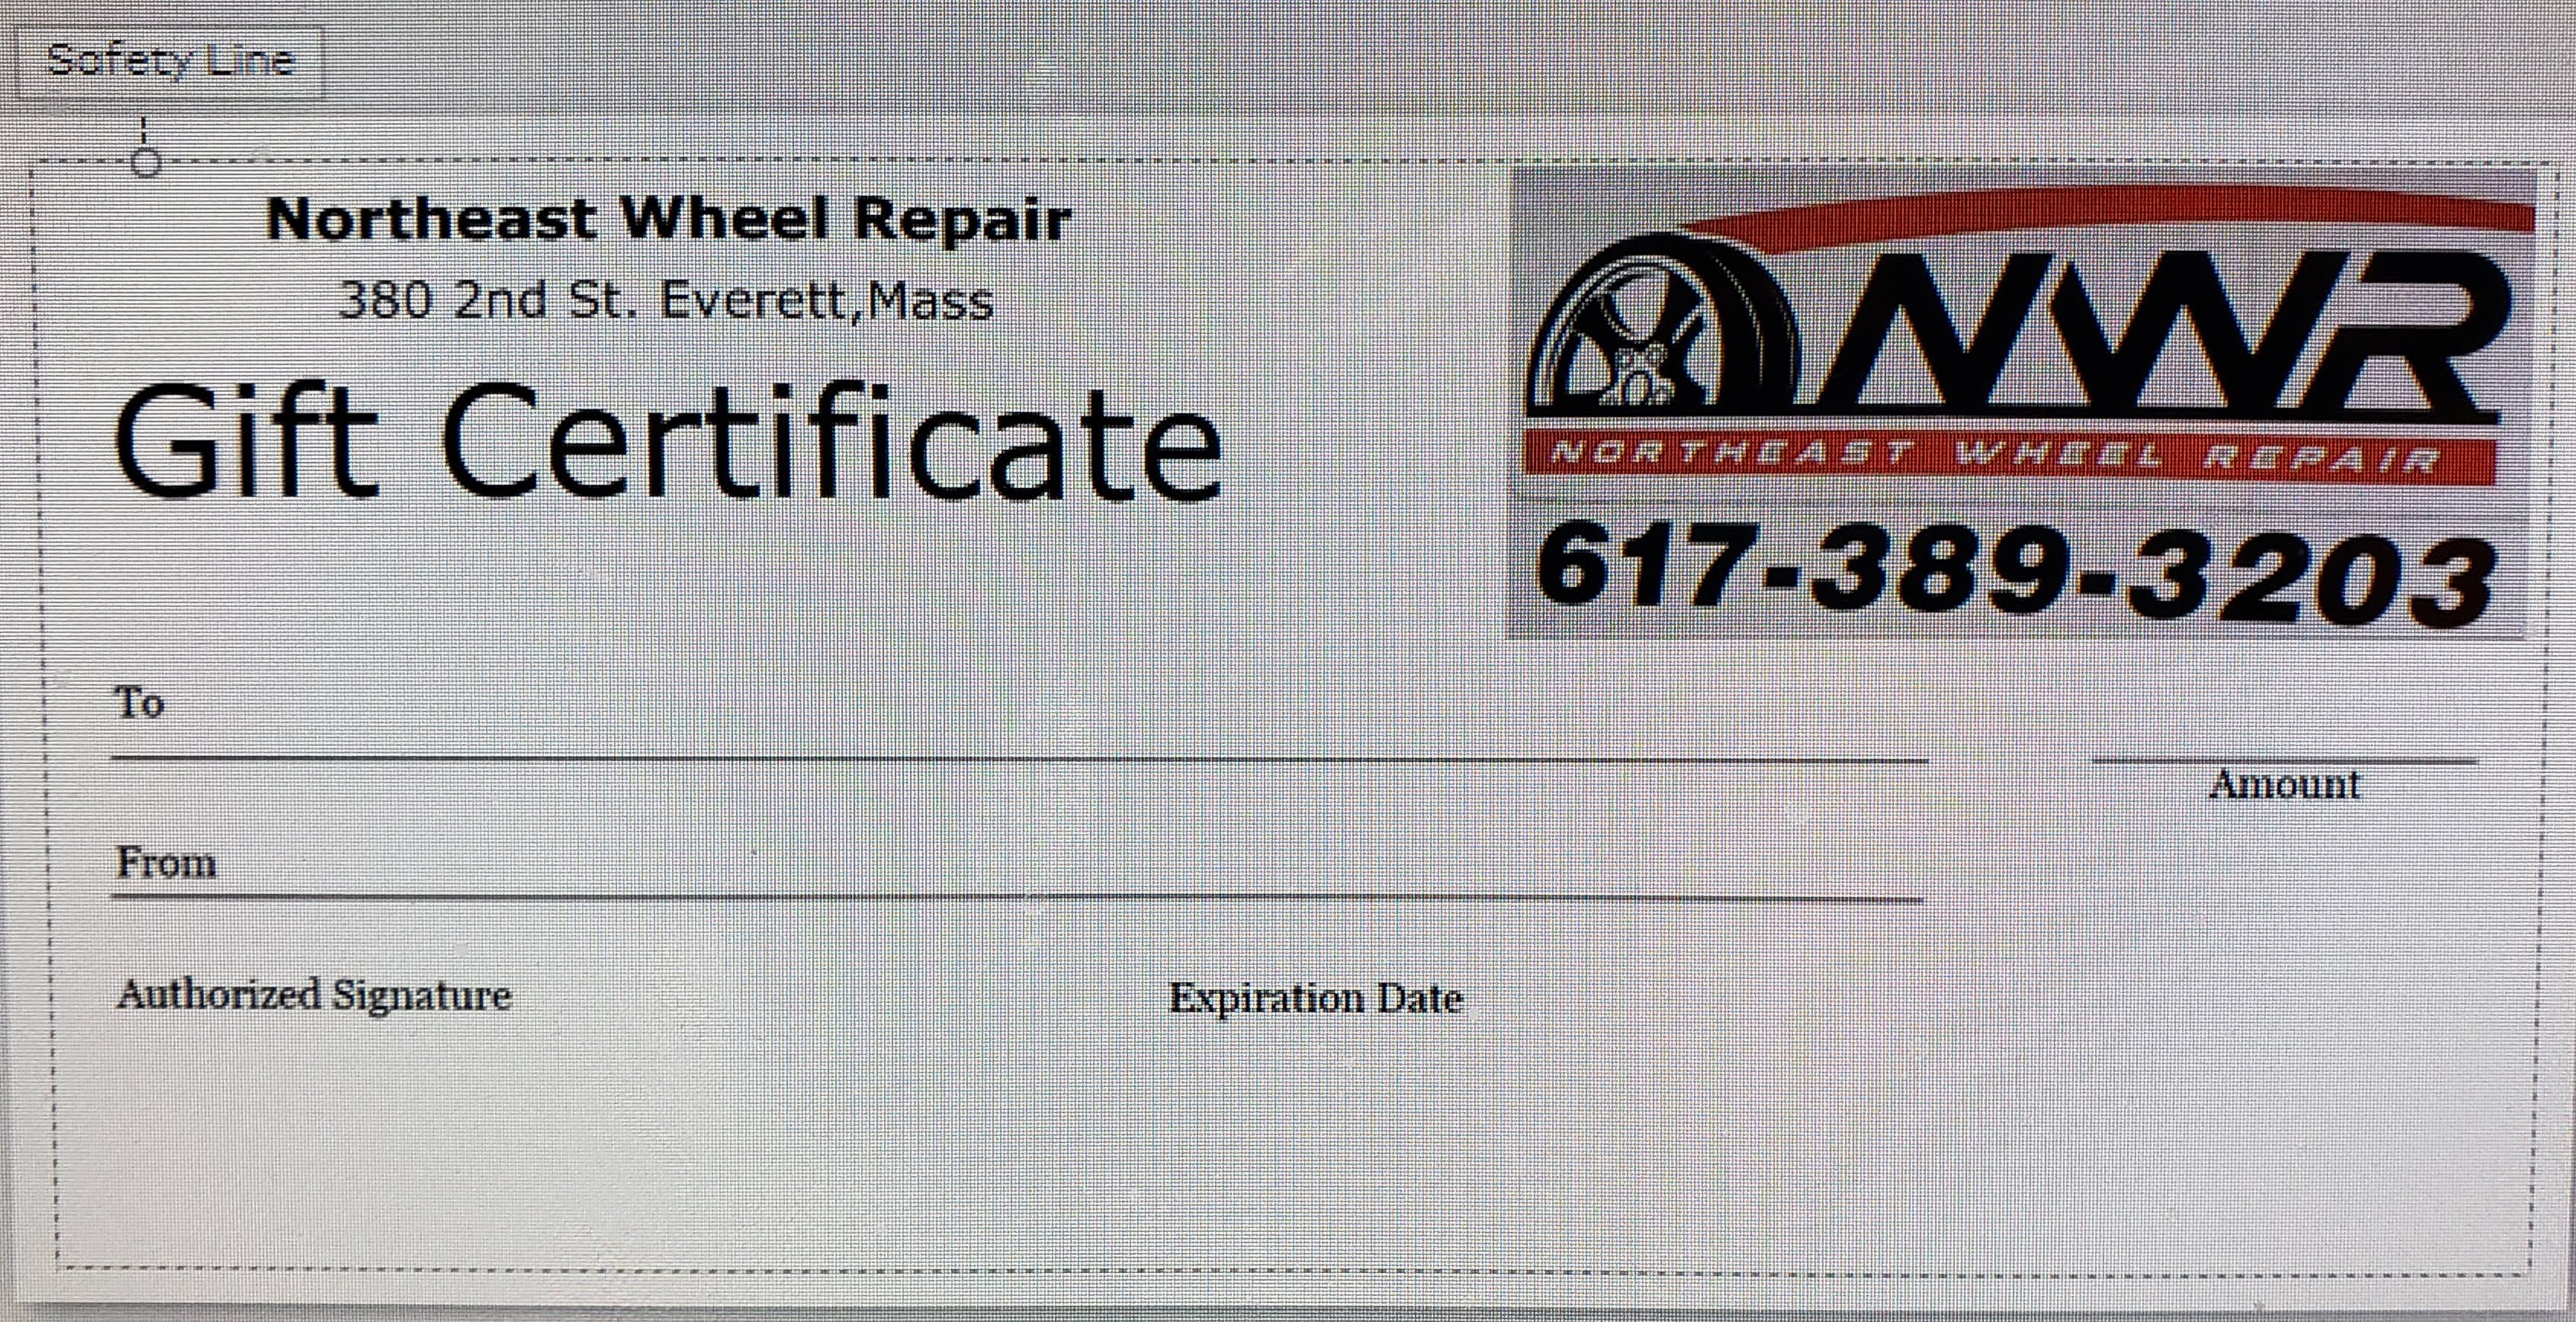 Northeast Wheel Repair Gift Certificate, Holiday Specials